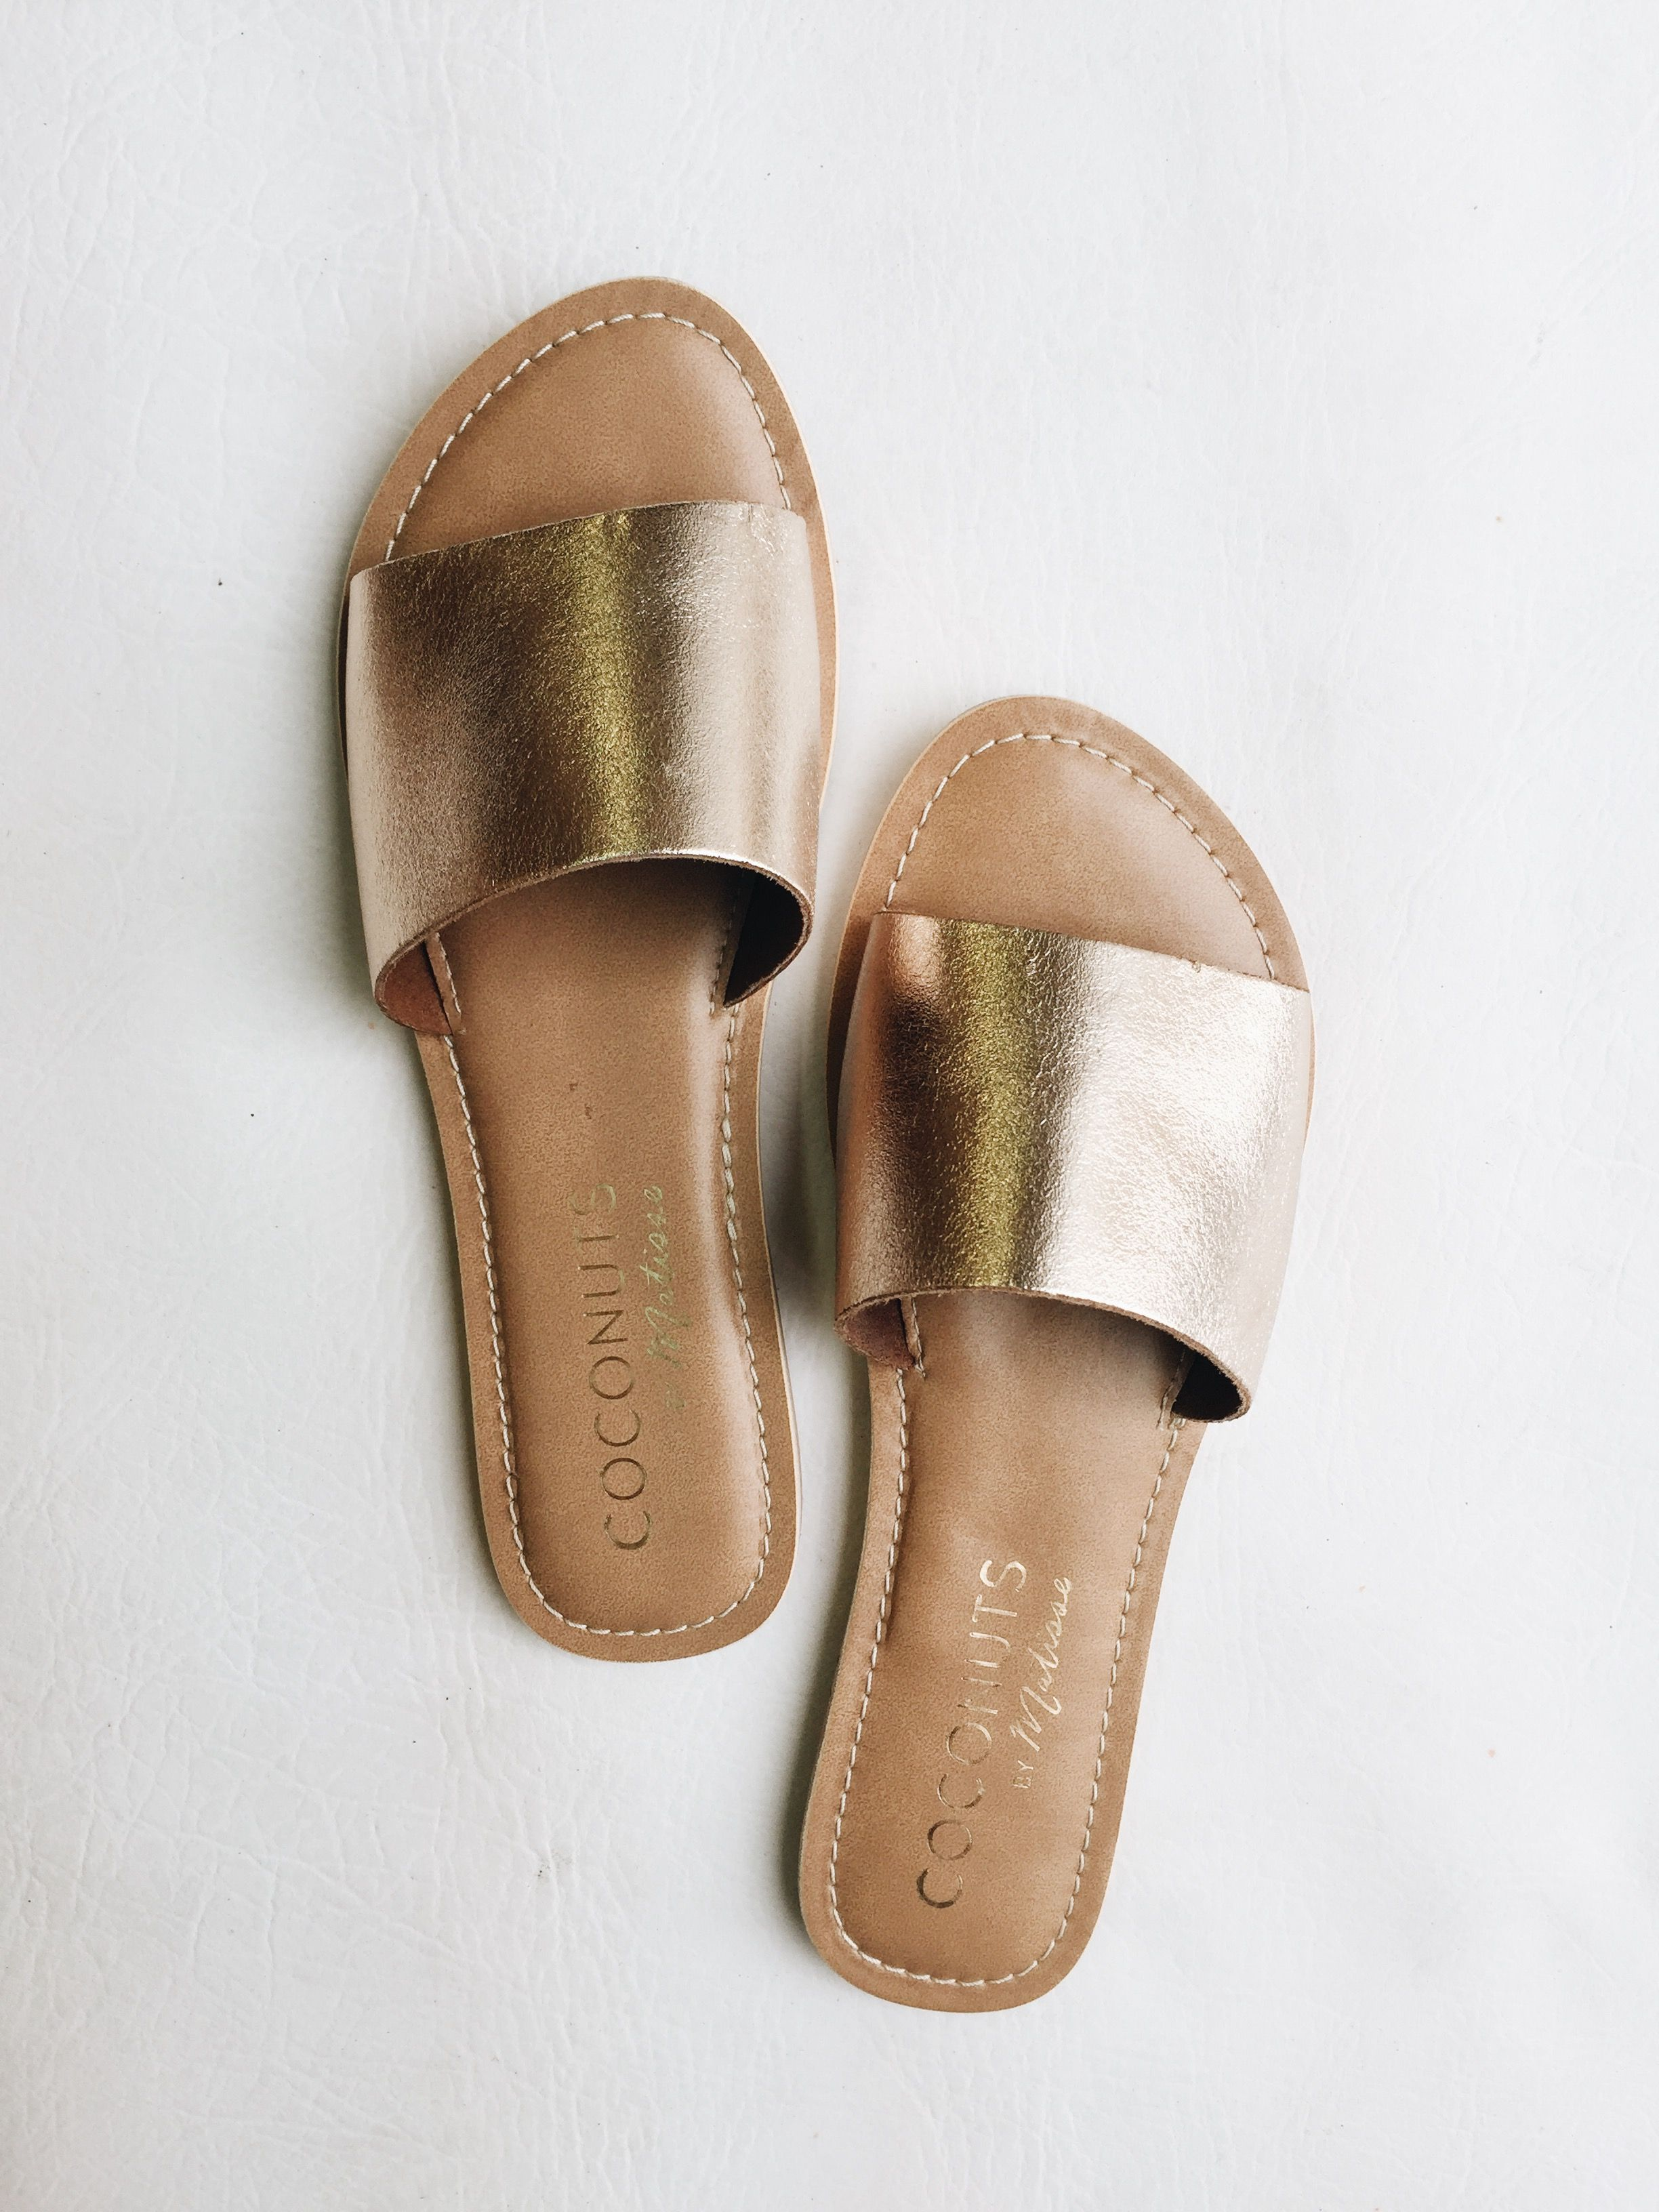 29c2b1dedfb7 Gold Slide Sandal. Slide into style with the Cabana sandal. Fashionable and  cute